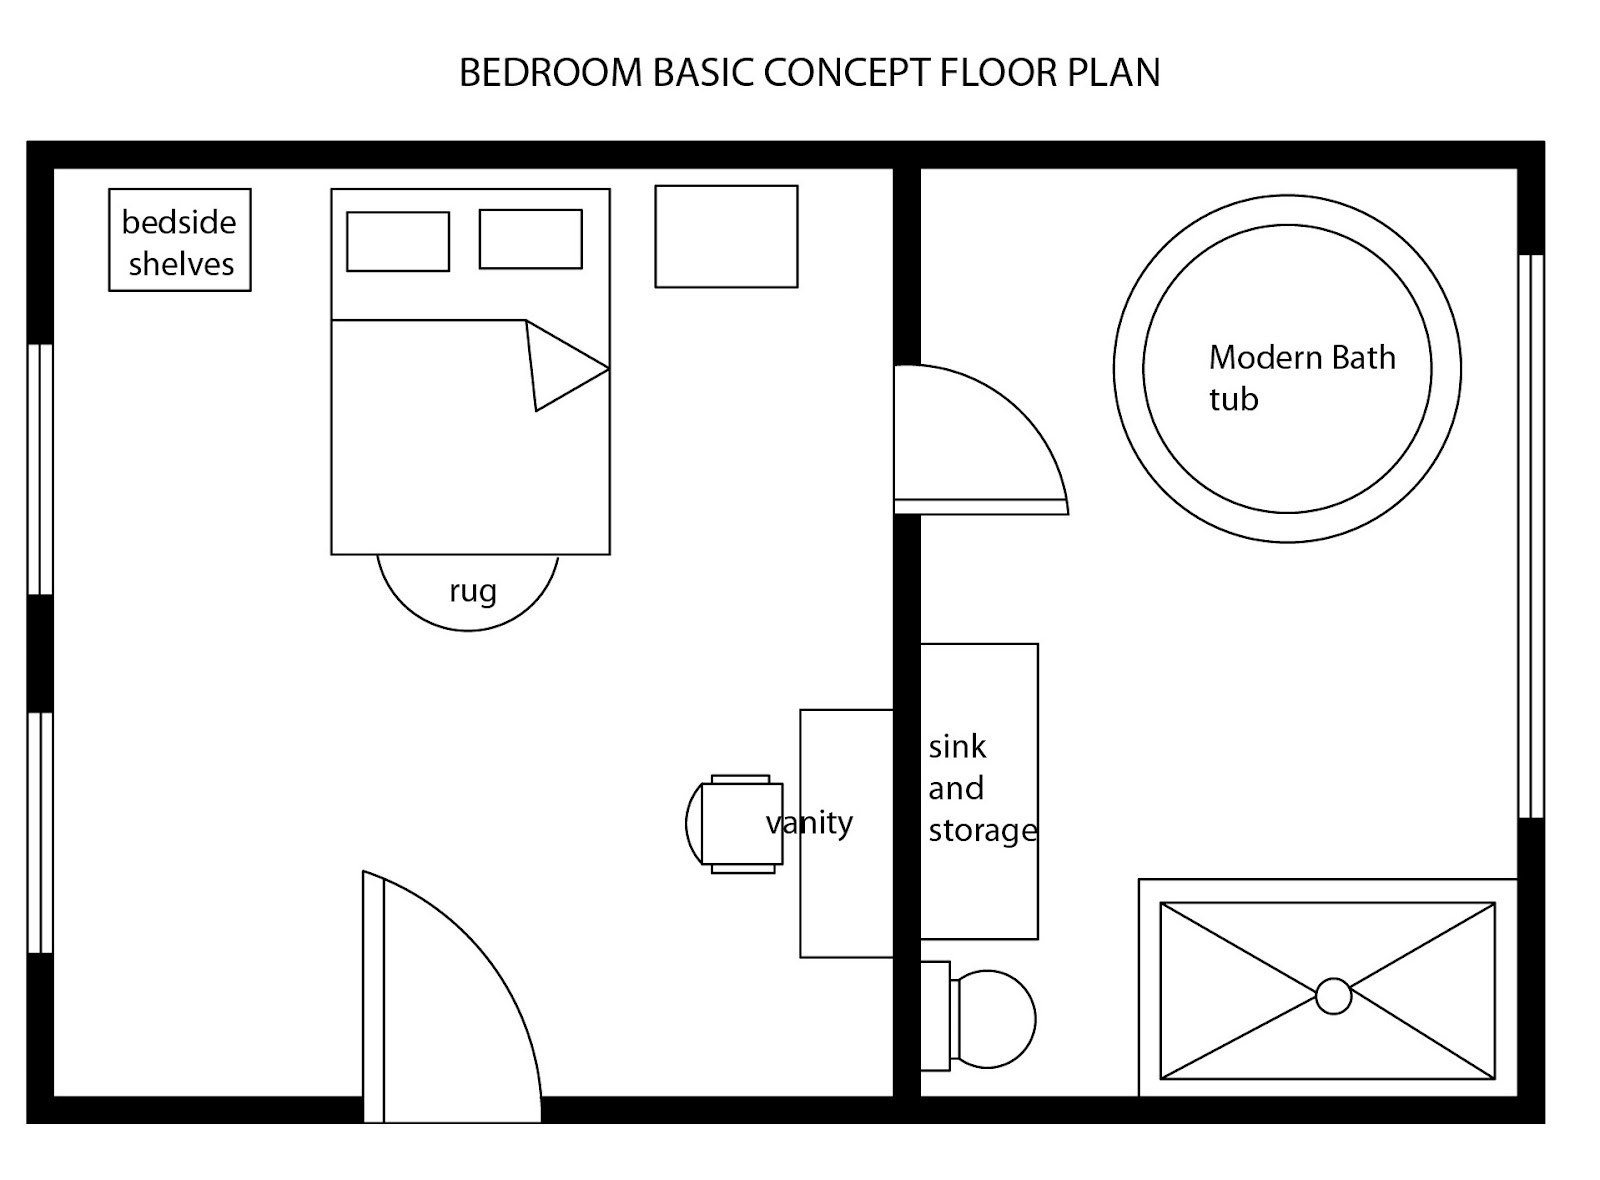 Interior design decor modern bedroom basic floor plan Sample 2 bedroom house plans